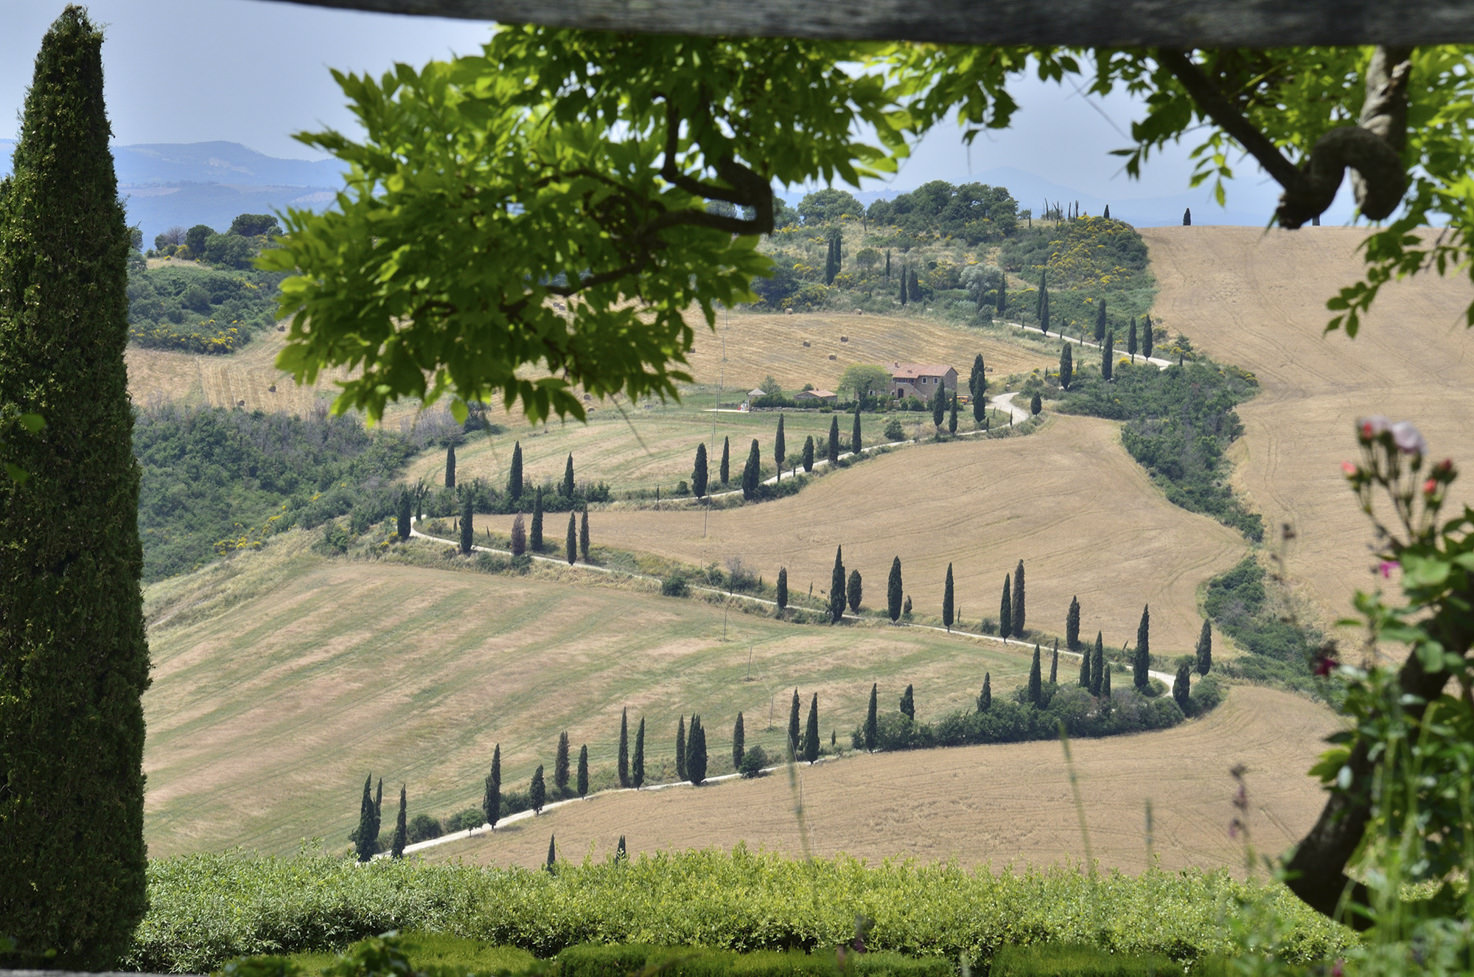 Panorama with view over the Tuscan hills